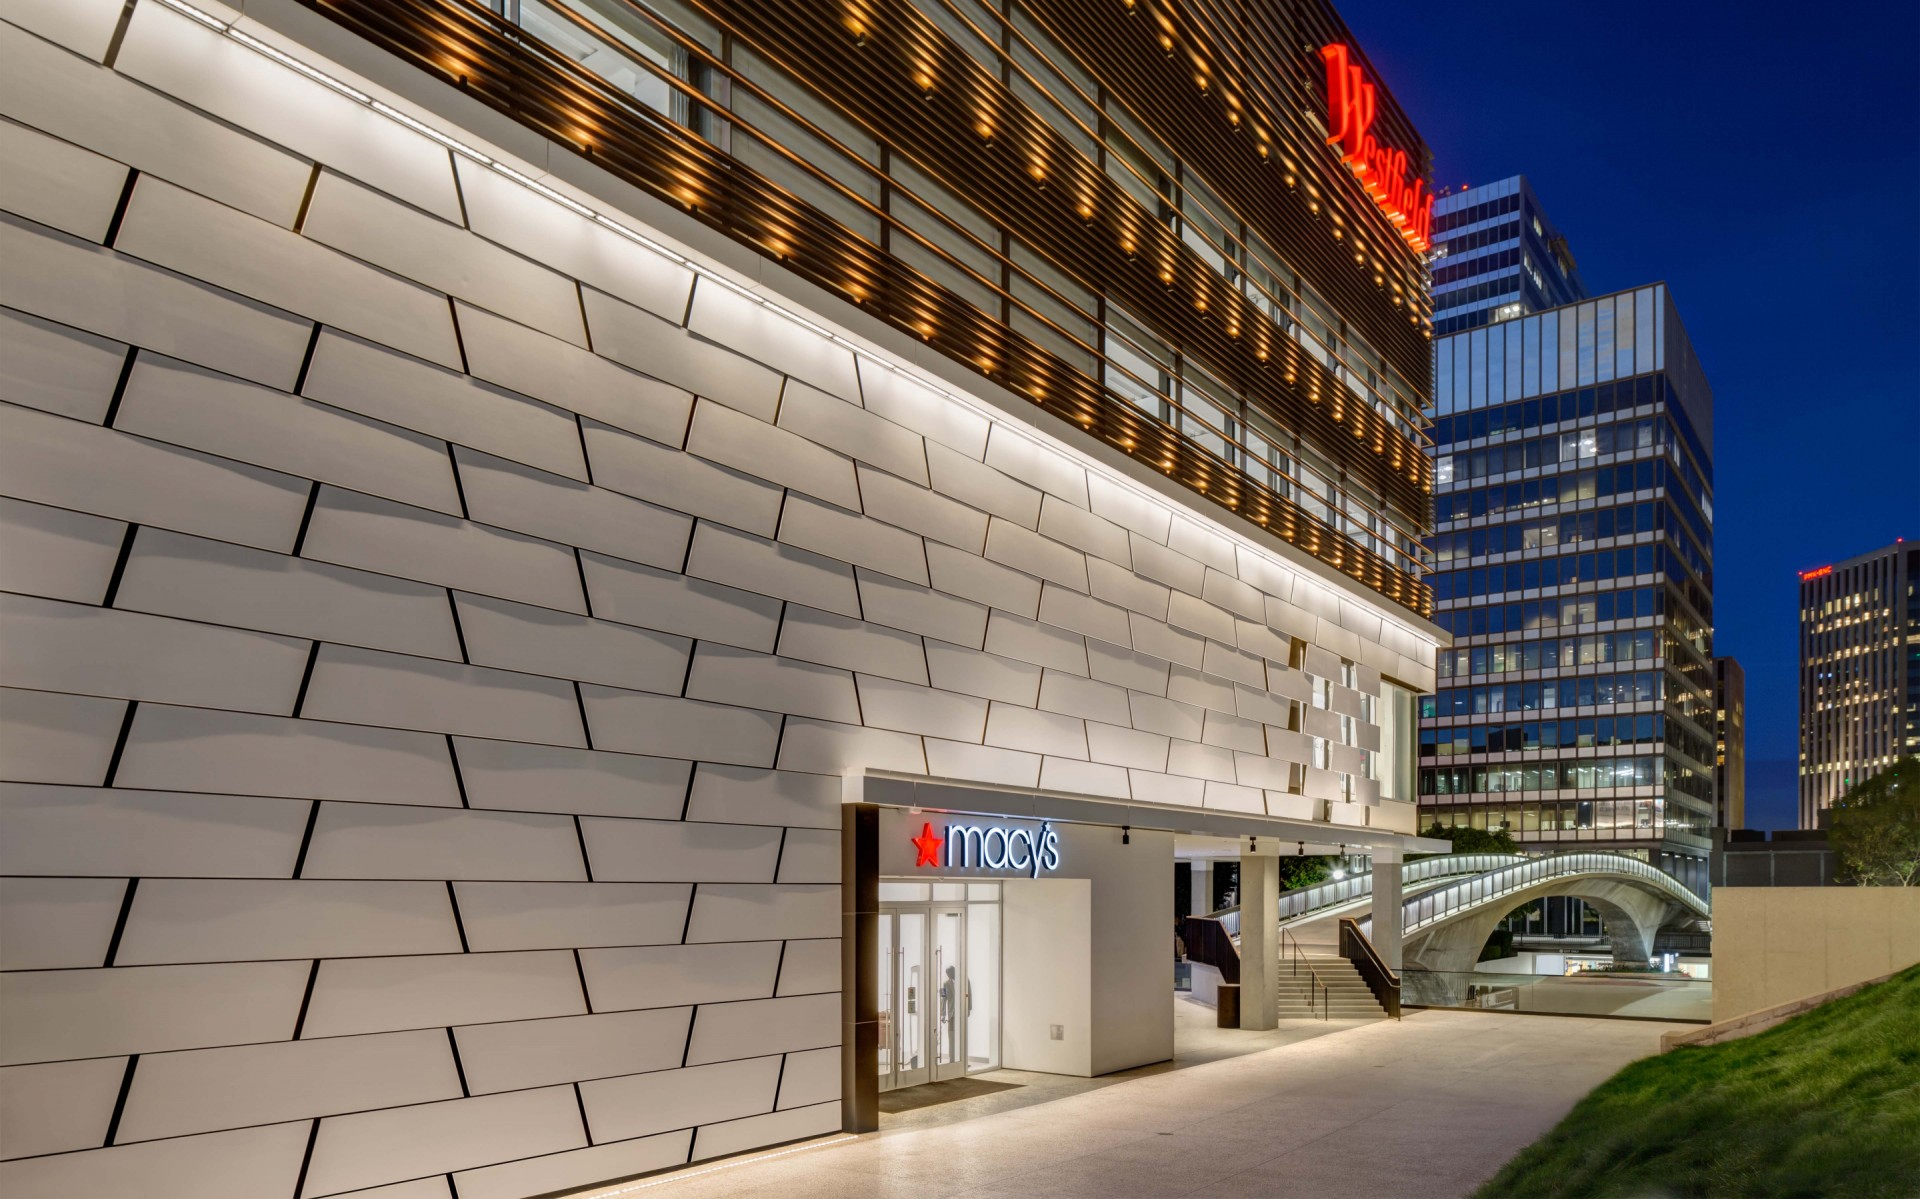 The luminaires can be adjusted to provide a range of crisp white illumination to a warmer, more intimate lighting on the molded, artistically textured main white sections of the facade. – Martin King